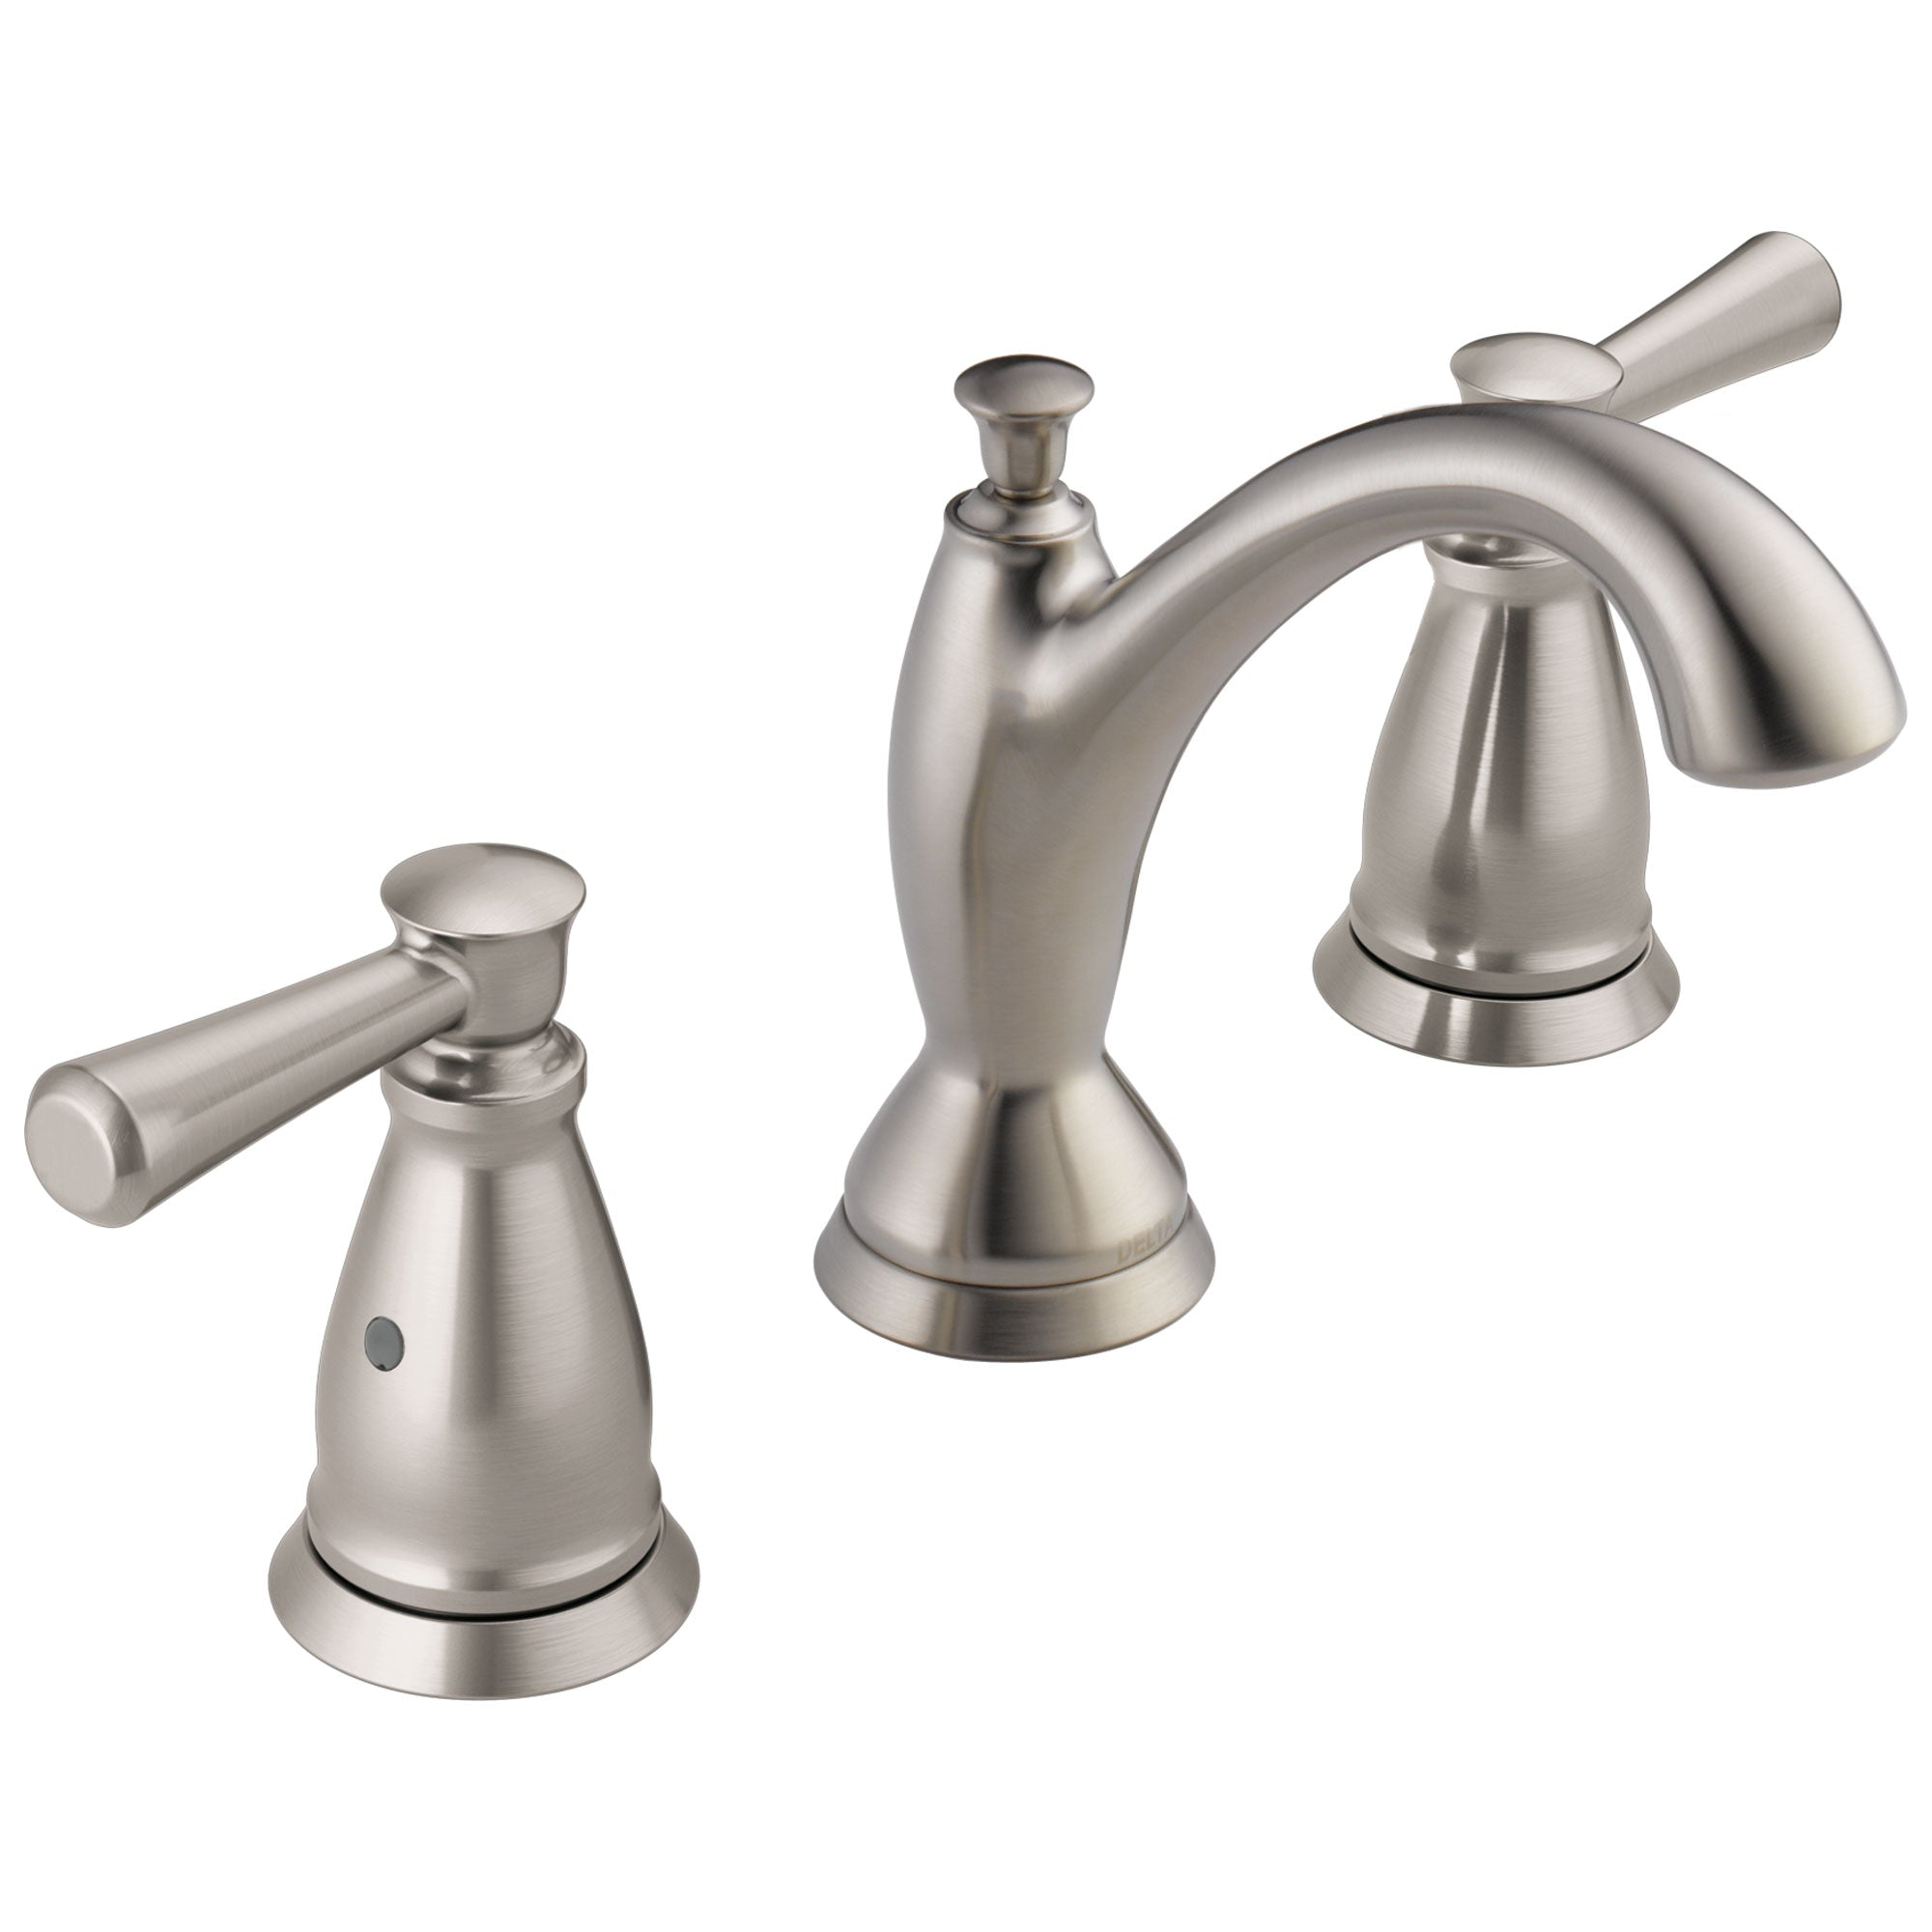 Delta Linden Collection Stainless Steel Finish Two Handle Widespread Lavatory Bathroom Sink Faucet with Metal Pop-up Drain D3593SSMPUDST